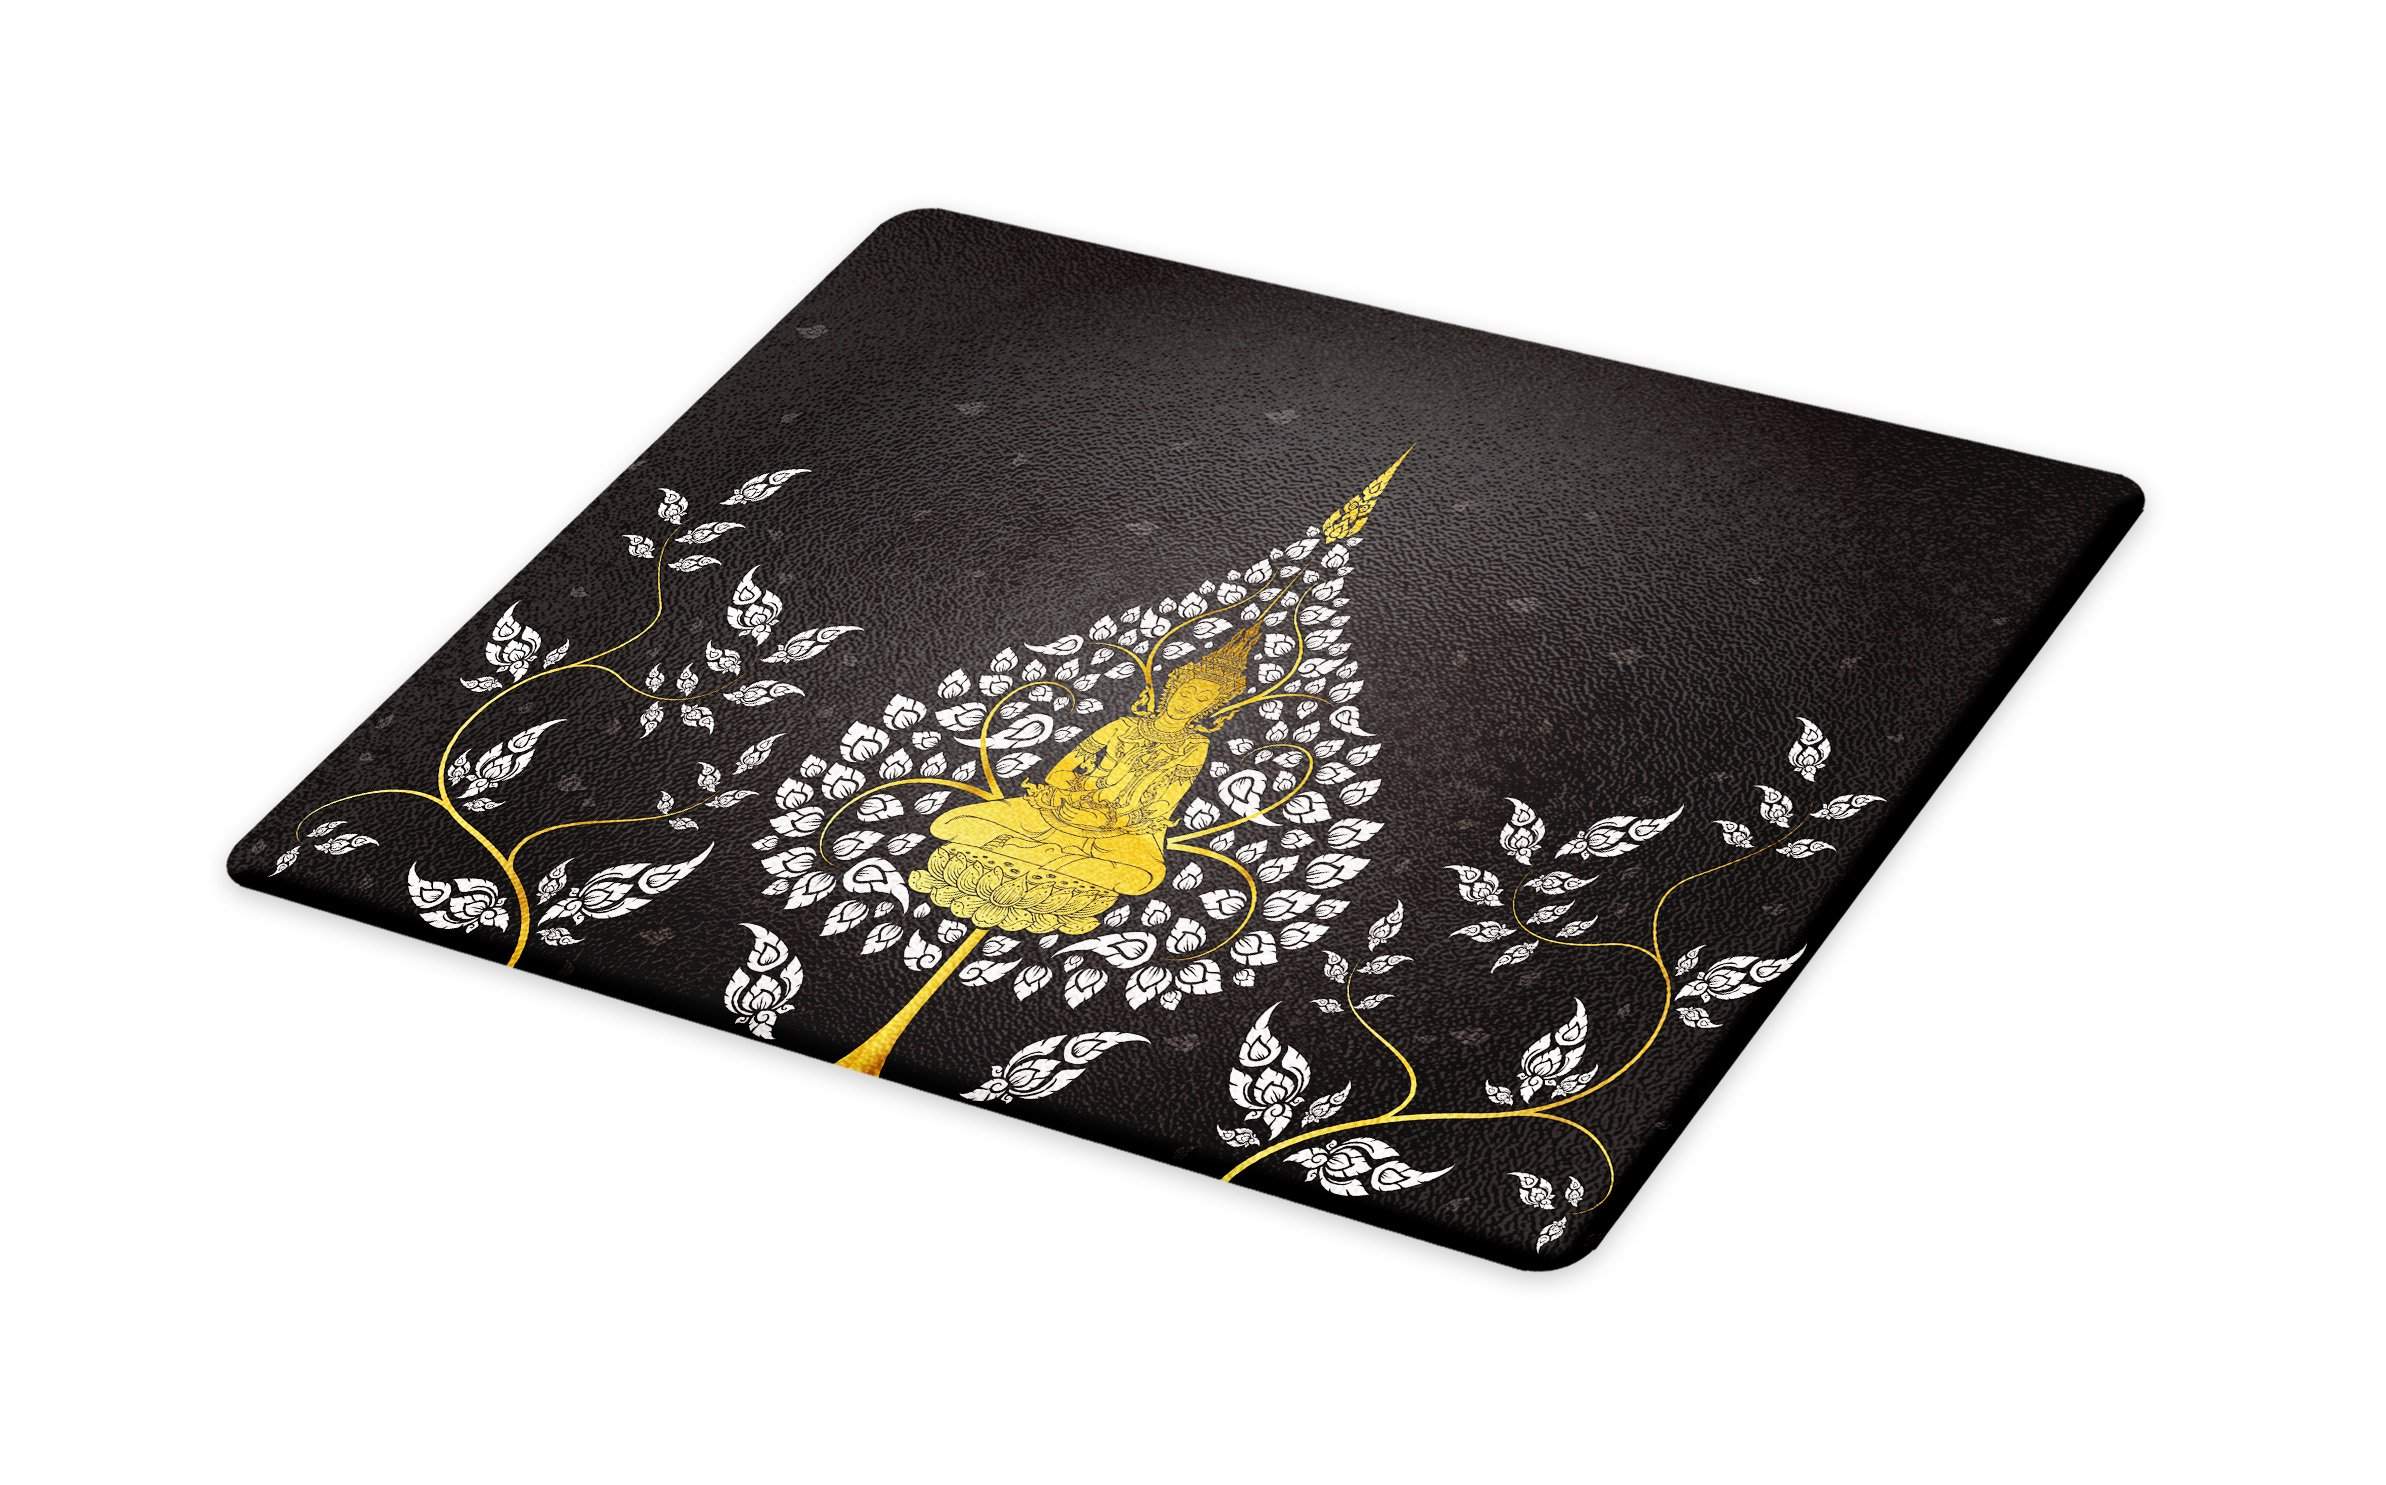 Lunarable Asian Cutting Board, Ancient Religious Thai Character with Floral Elements Meditation, Decorative Tempered Glass Cutting and Serving Board, Small Size, Charcoal Grey White Yellow by Lunarable